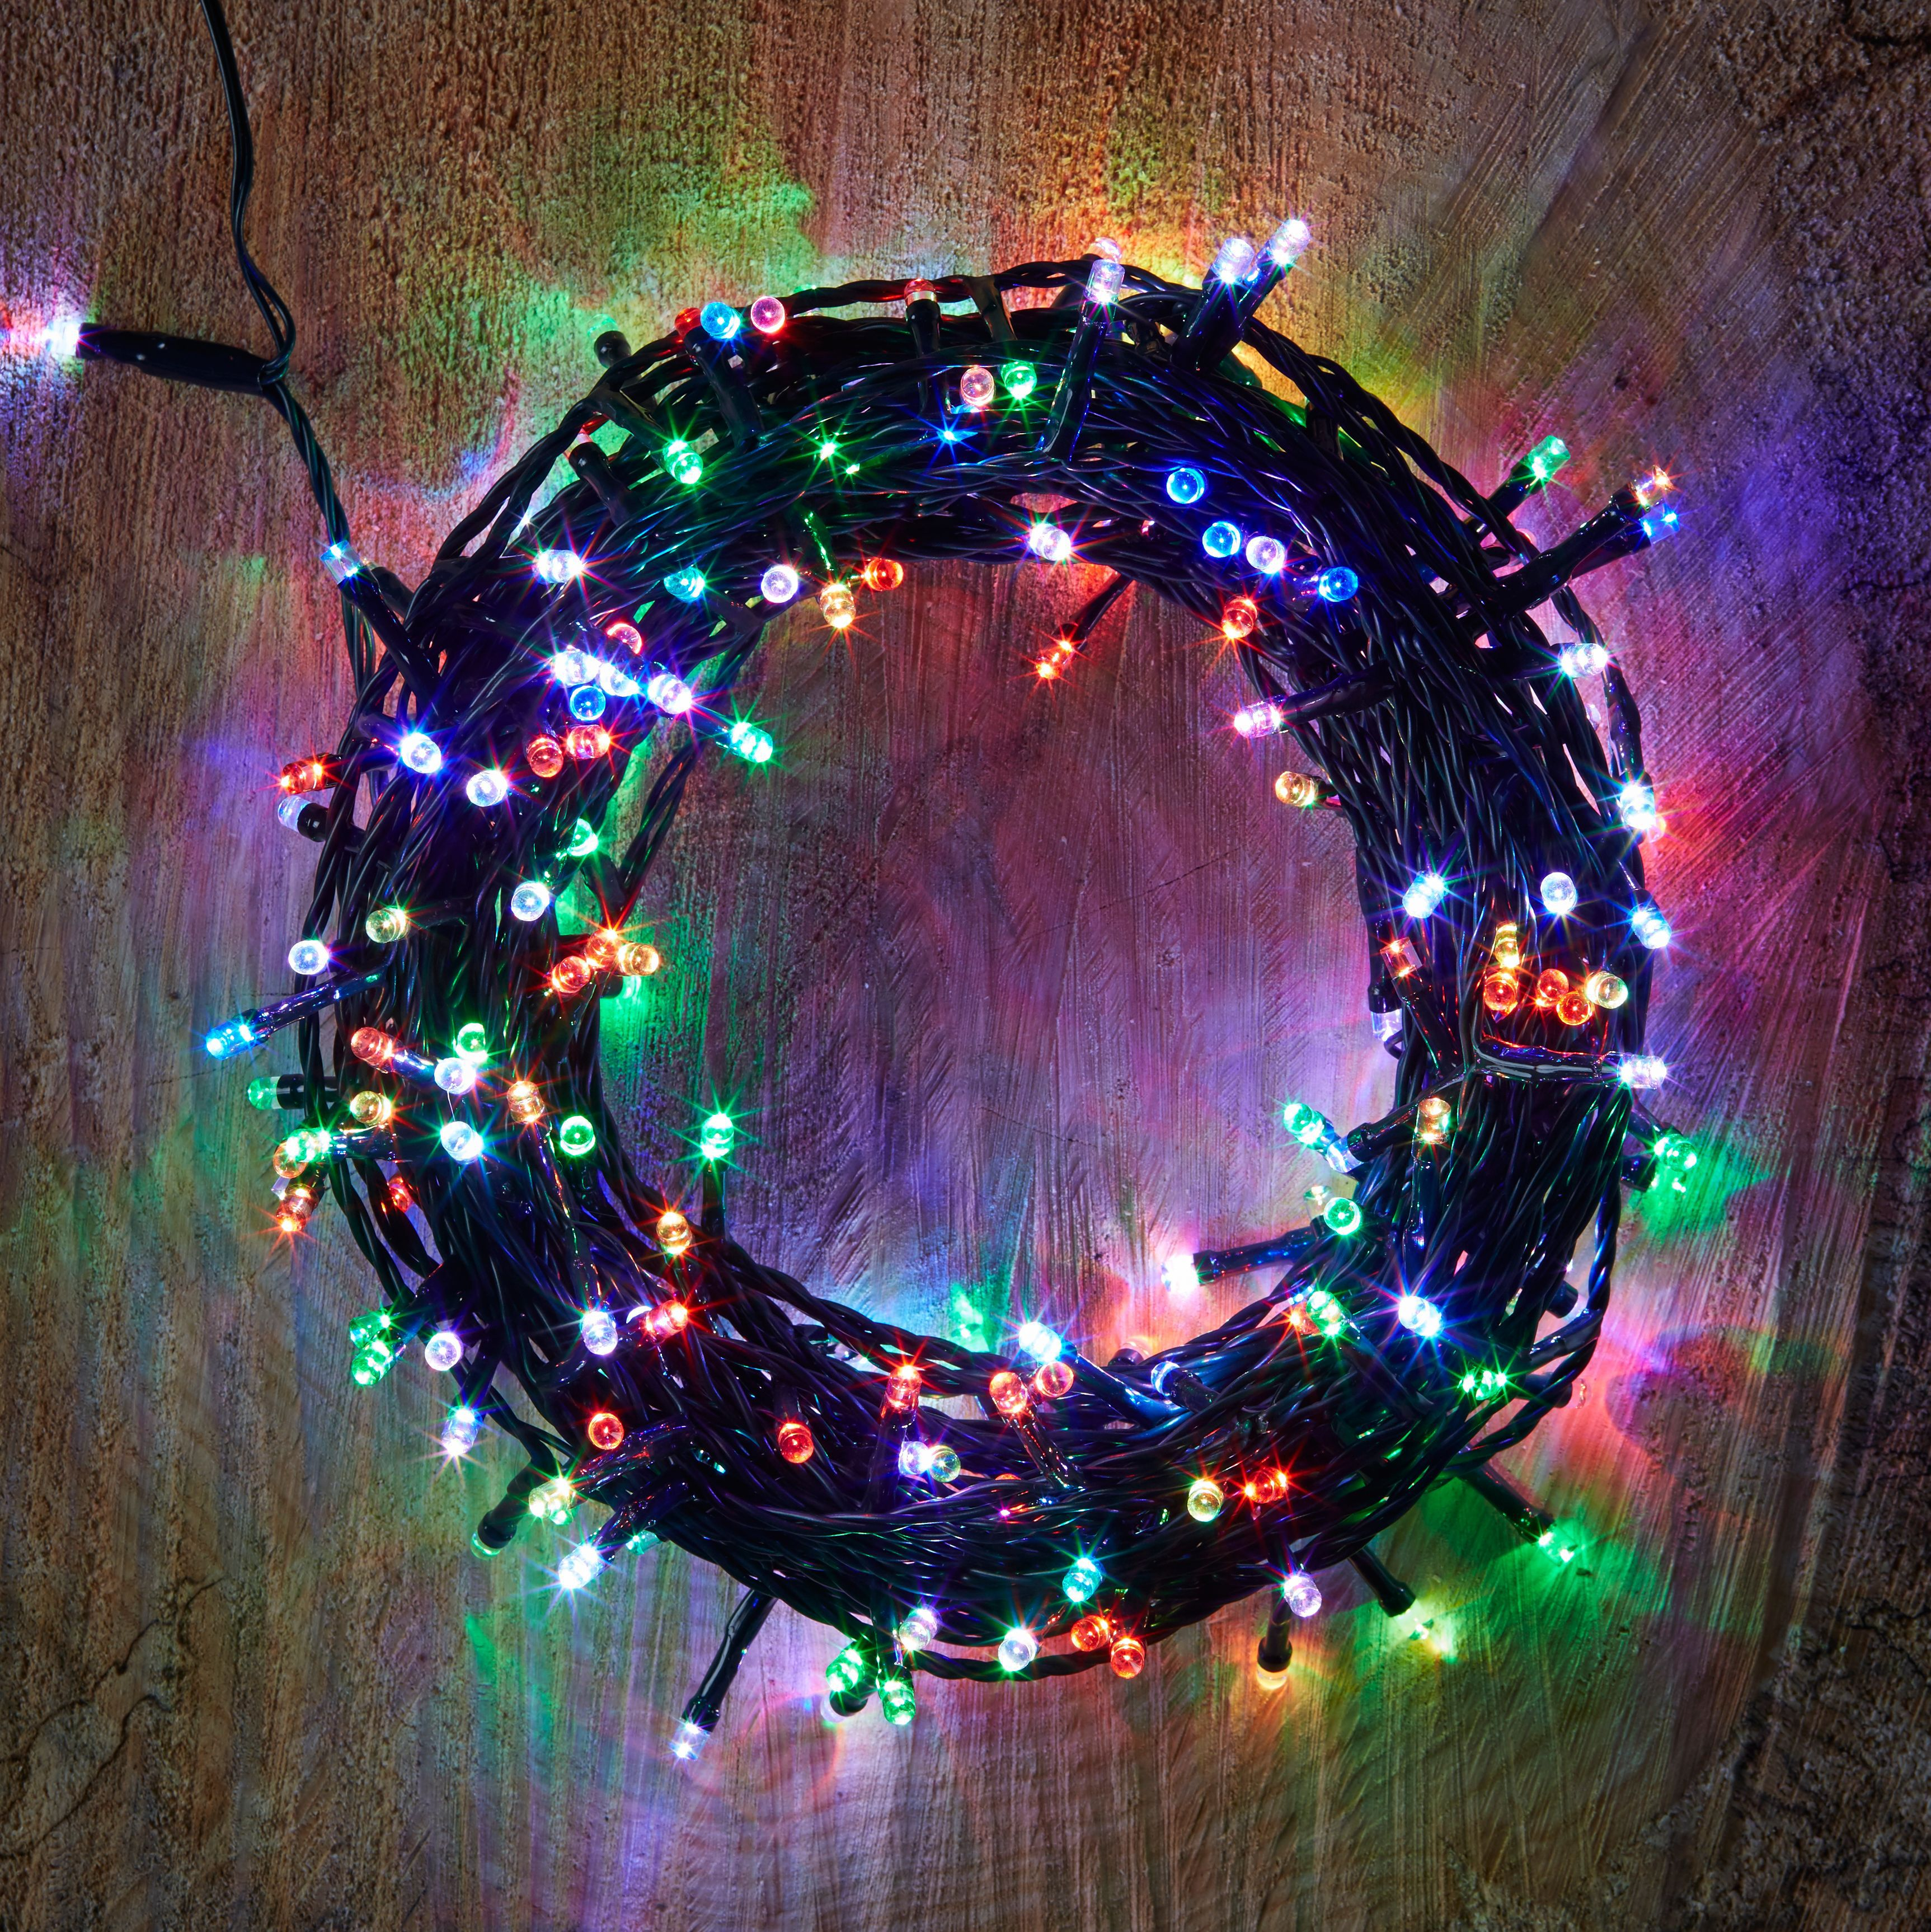 240 Colour Changing LED String Lights Departments DIY at B&Q